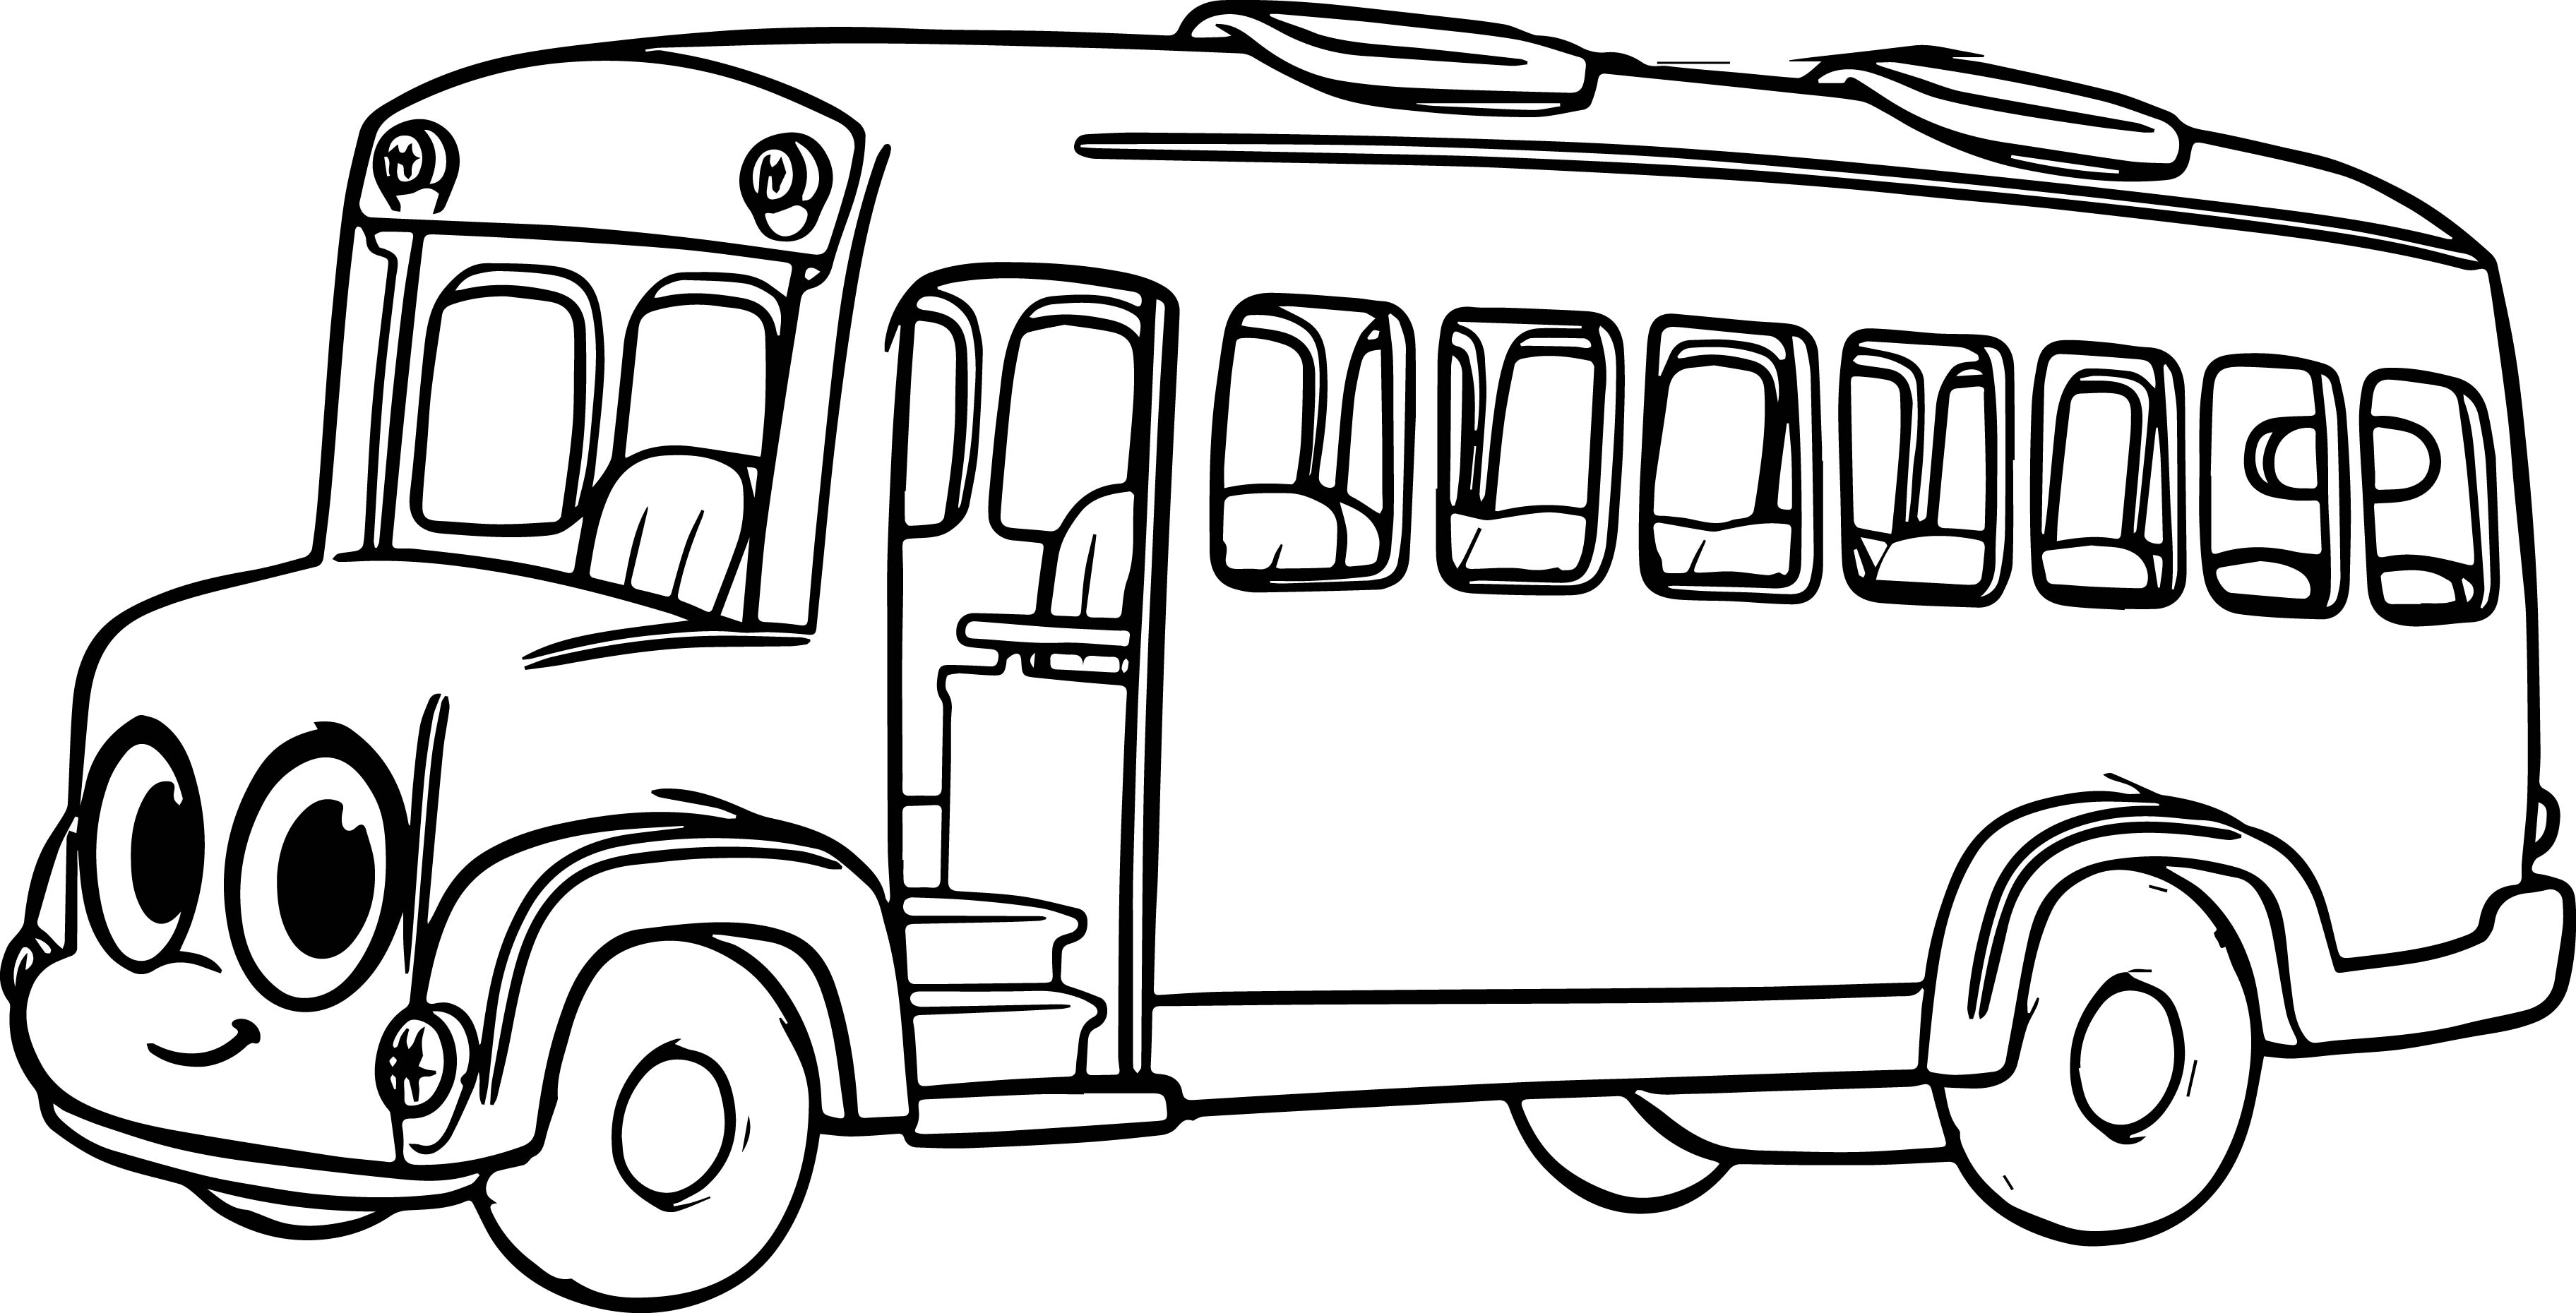 3648x1860 The Magic School Bus Coloring Pages Pictures To Print And Col On